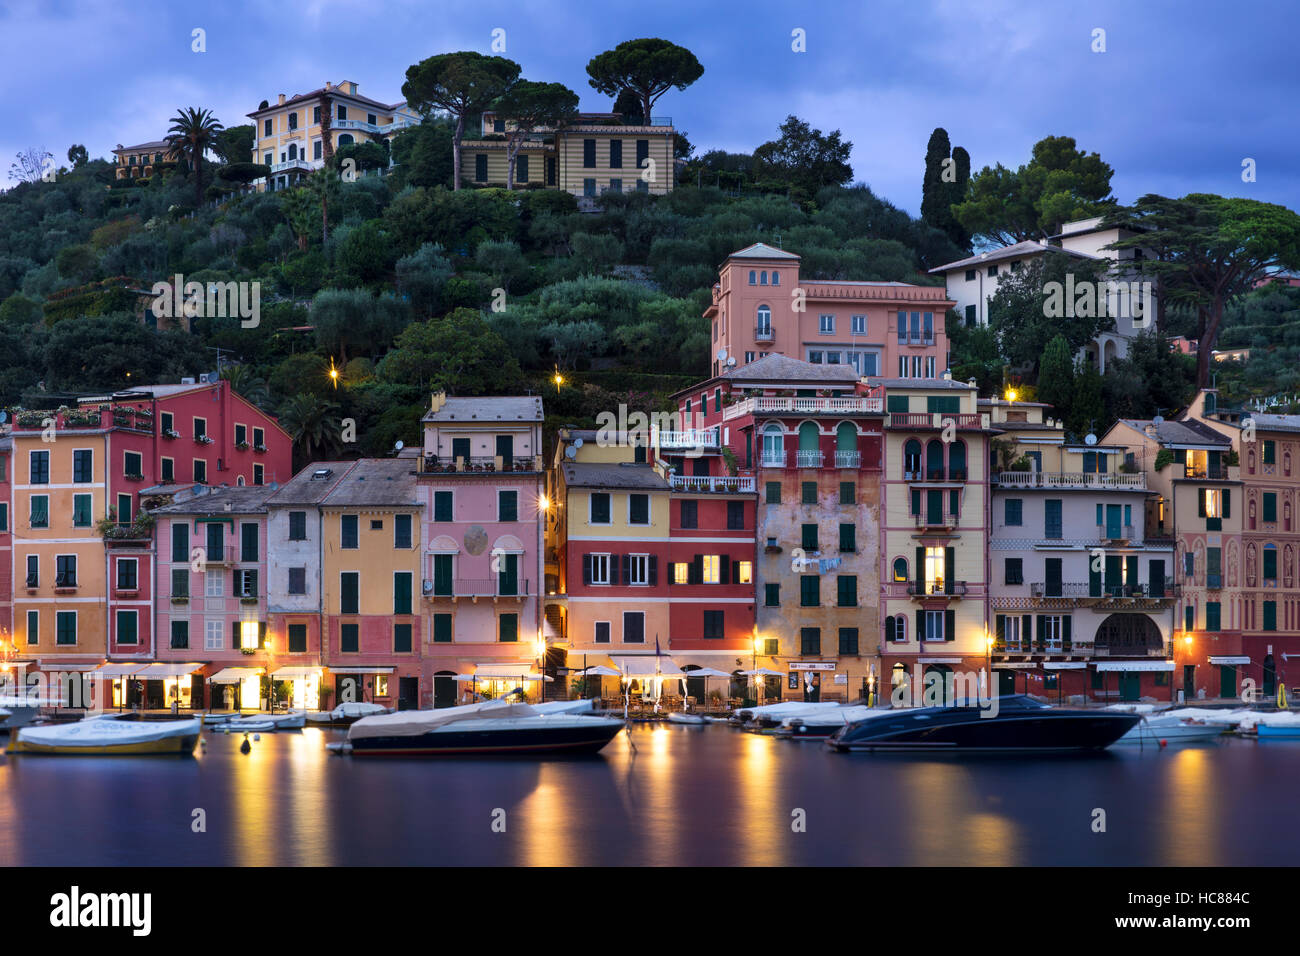 Le crépuscule sur le port ville de Portofino, ligurie, italie Photo Stock